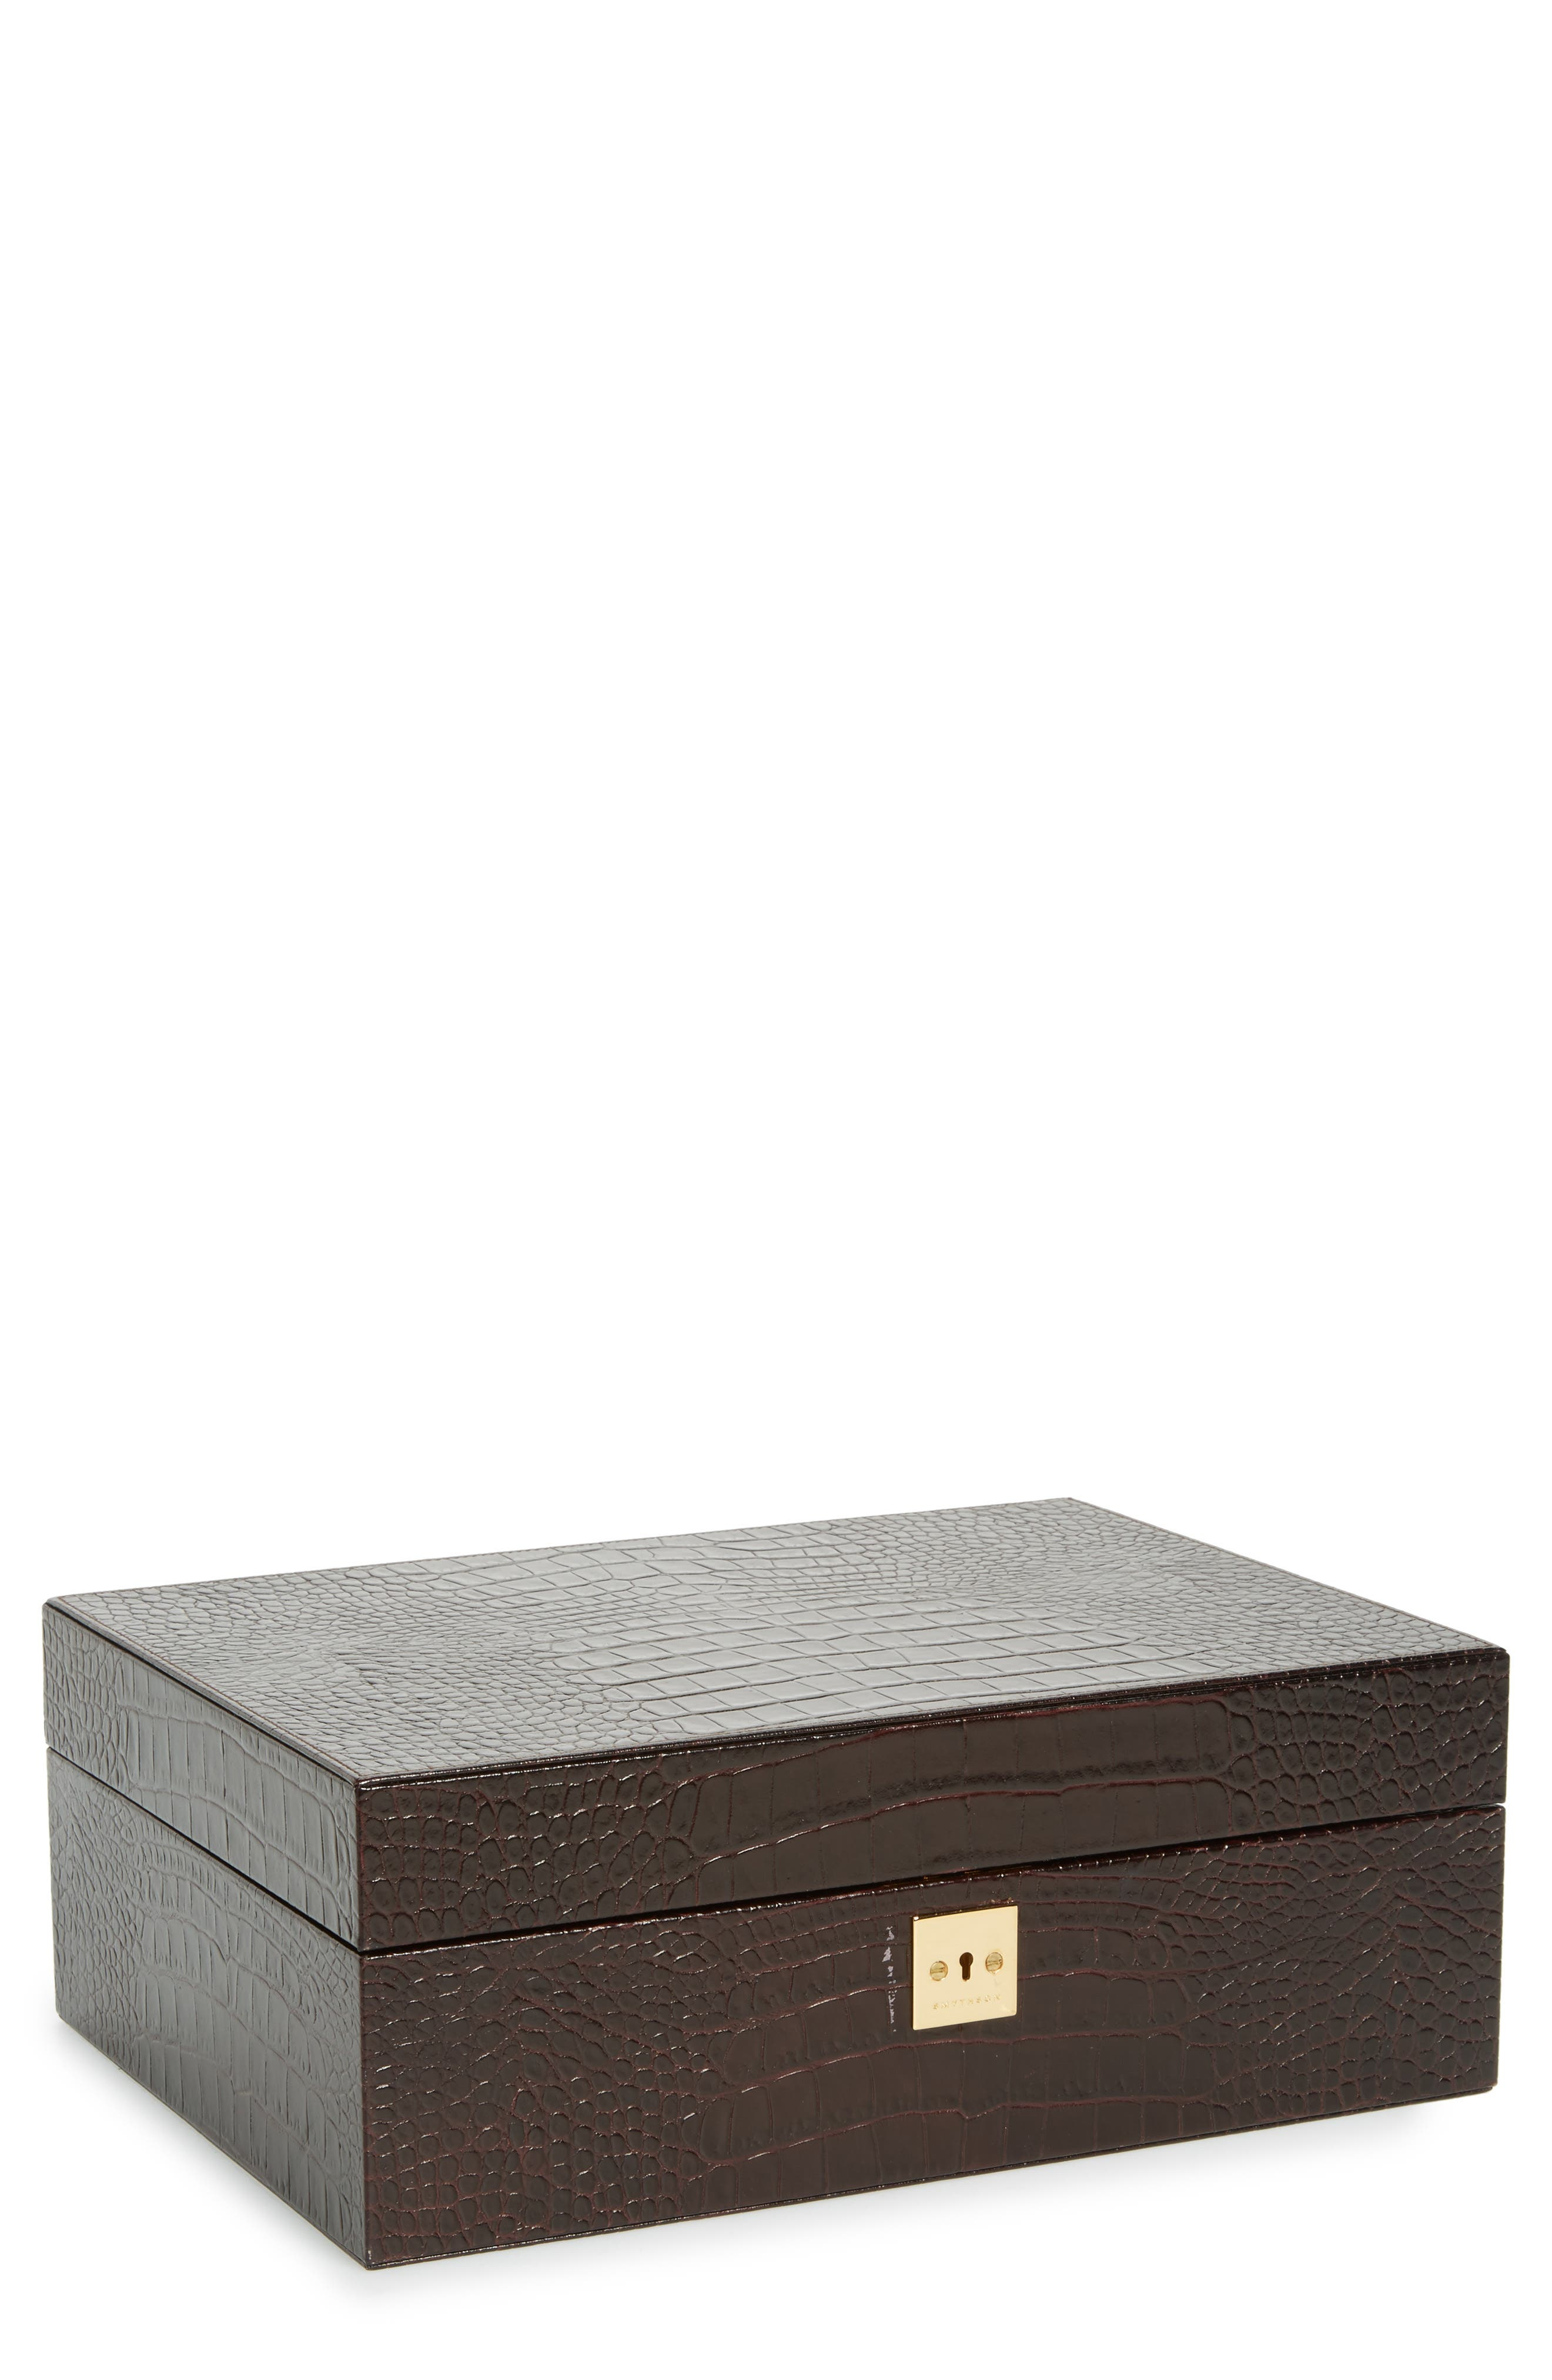 SMYTHSONMara Croc Embossed Jewelry Box With Travel Tray